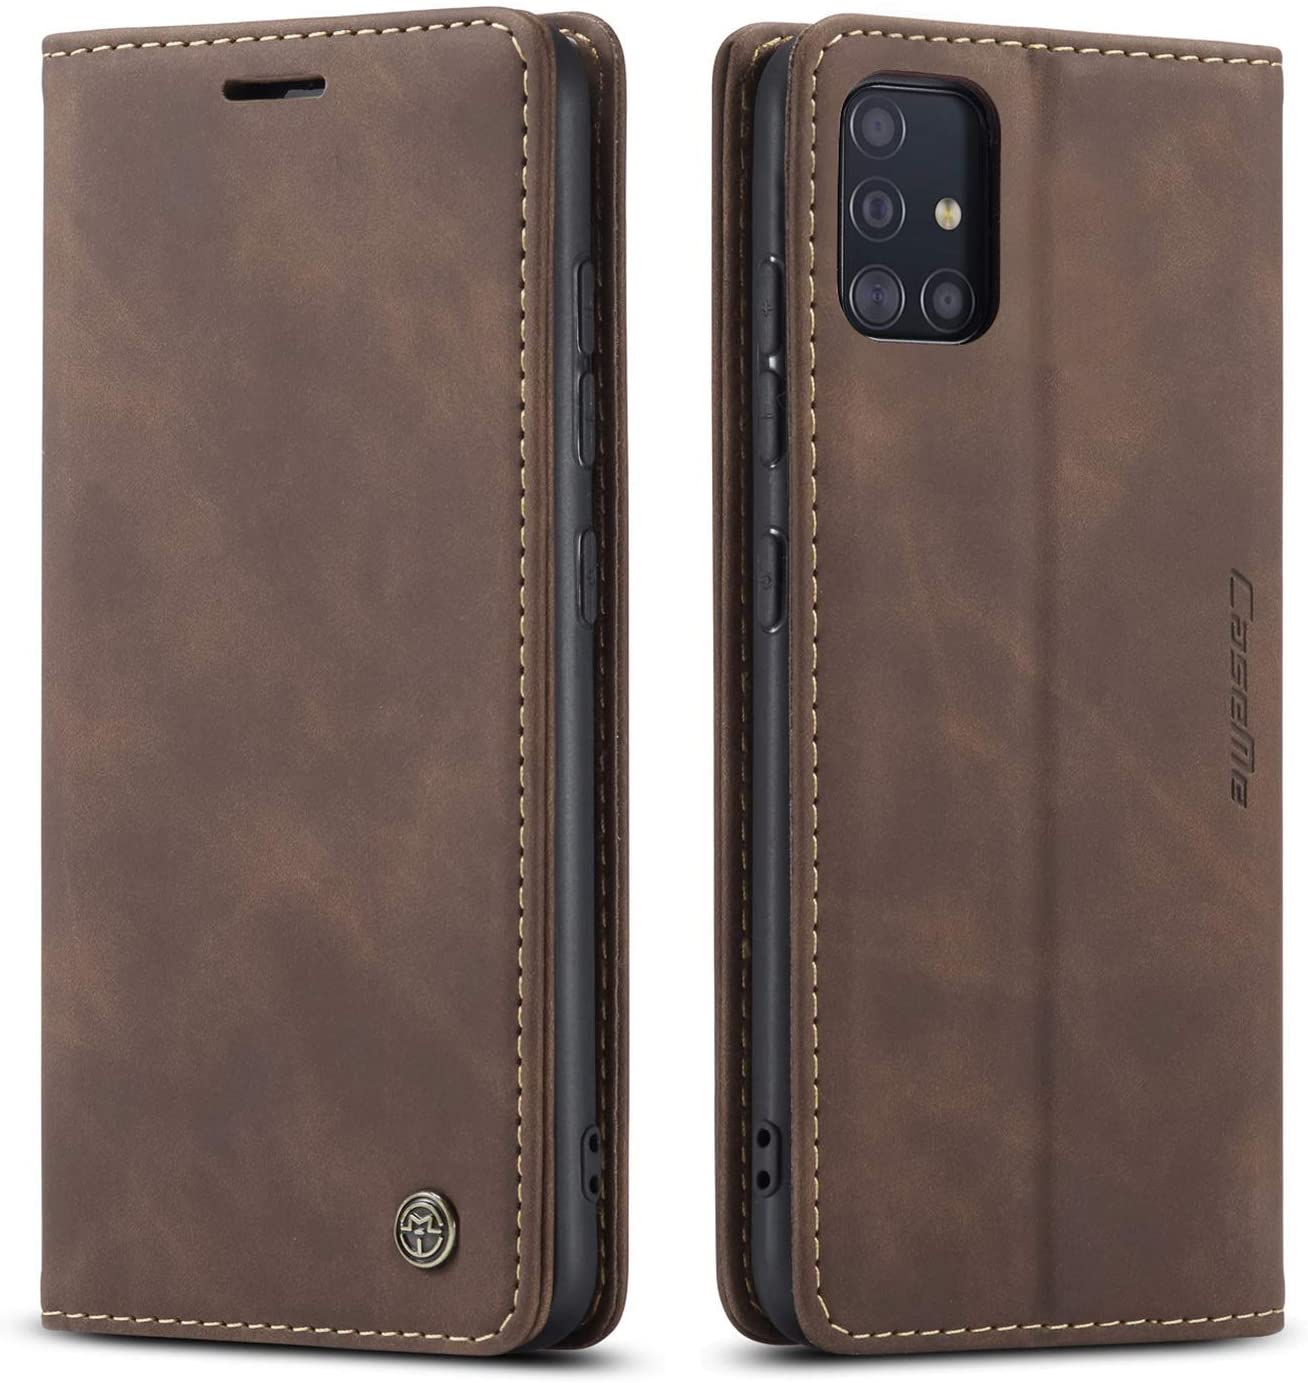 Samsung Galaxy A51 5G Wallet Case Credit Card Holder,Magnetic Stand Leather Flip Case,Durable Shockproof Protective Cover for Samsung Galaxy A51 5G 6.5 Inch (Coffee)